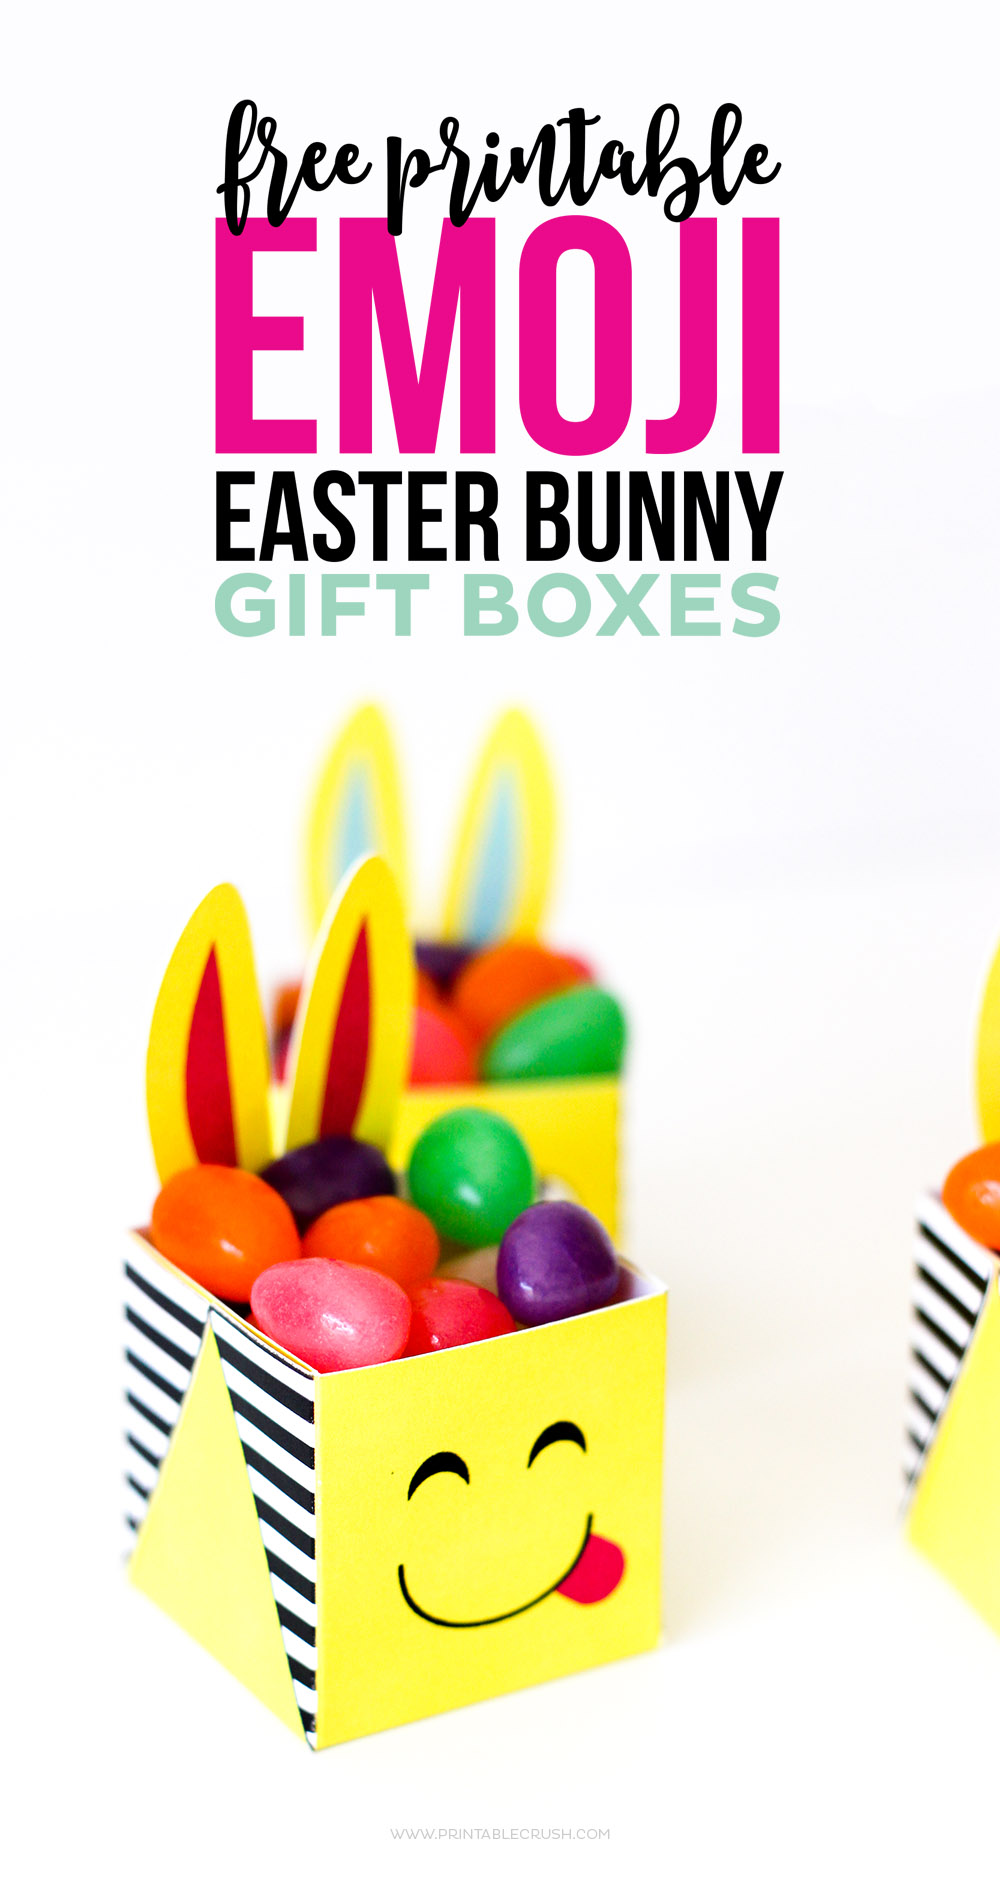 Easter emoji bunny boxes free printable printable crush tongue easter emoji box filled with jelly beans negle Image collections